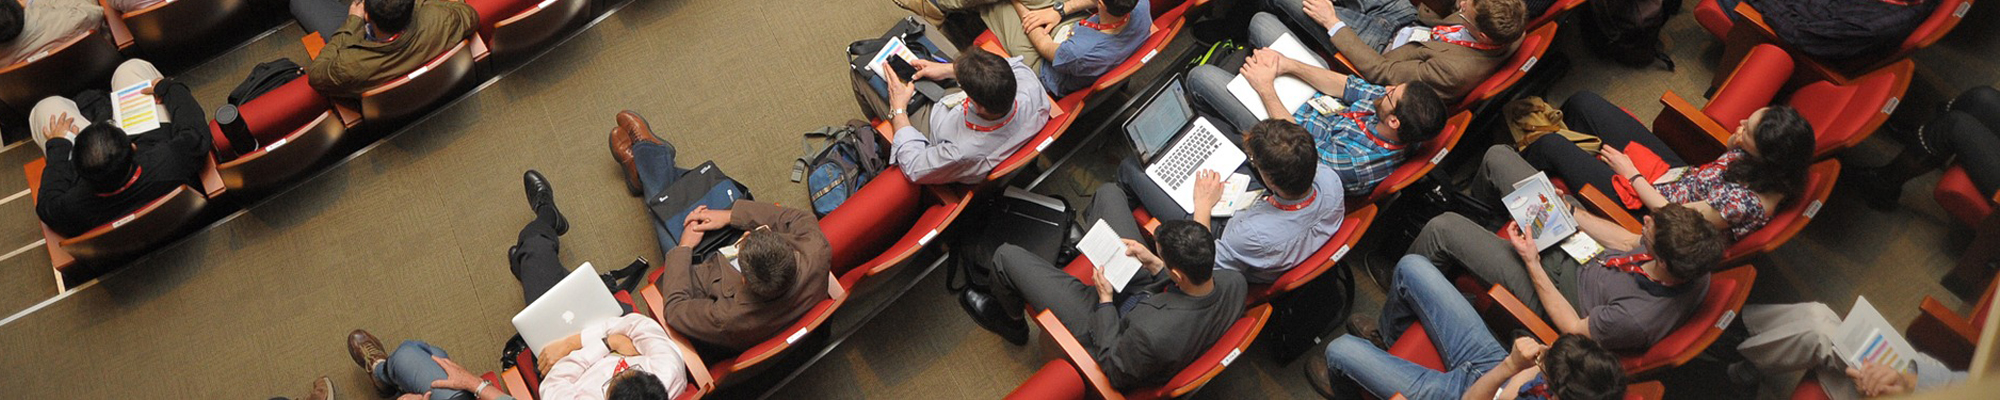 aerial view of people in a classroom or lecture hall